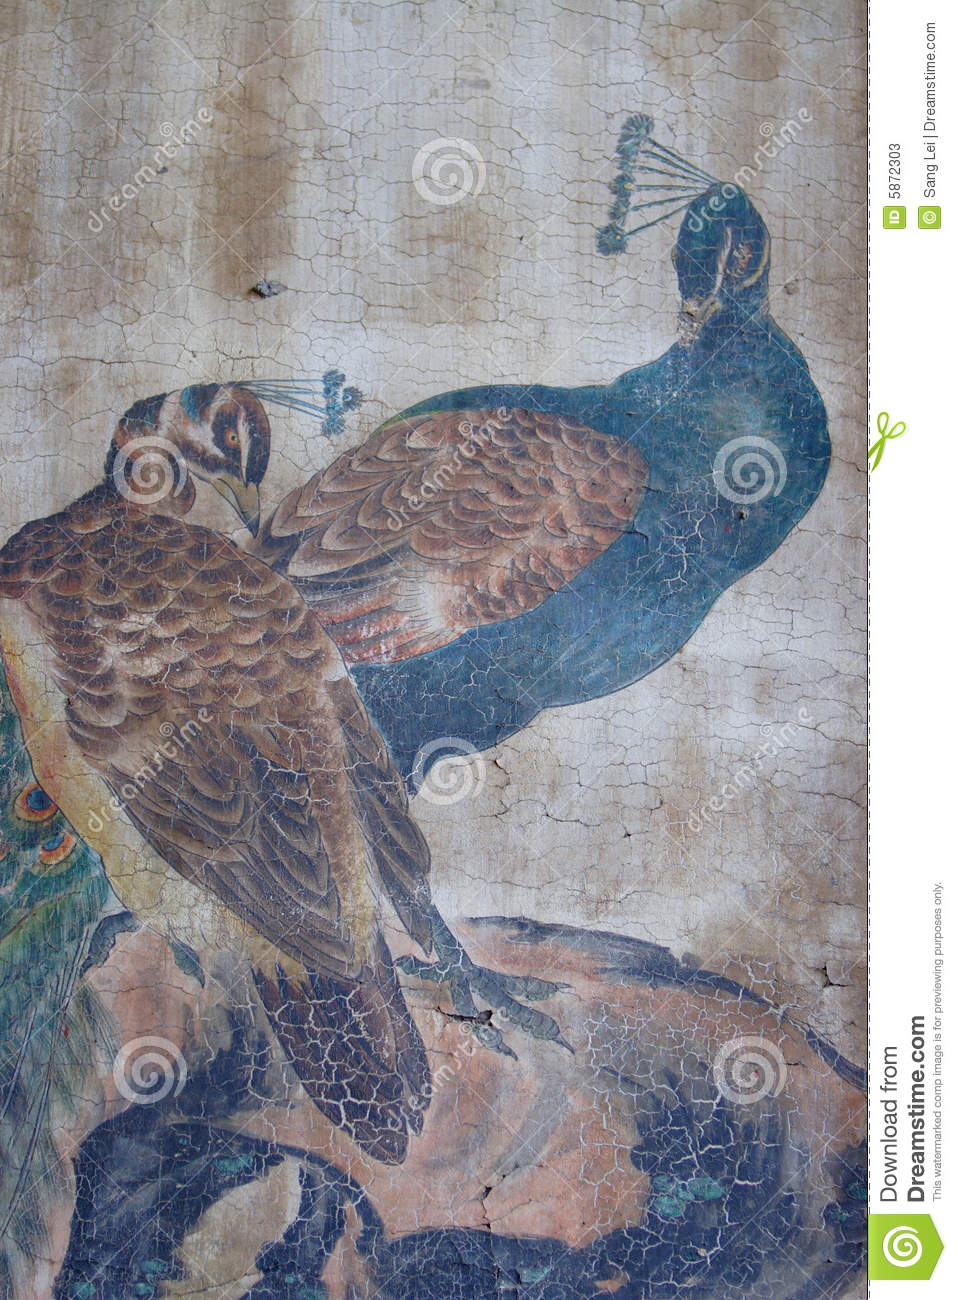 Chinese classical painting stock photos image 5872303 for Classical mural